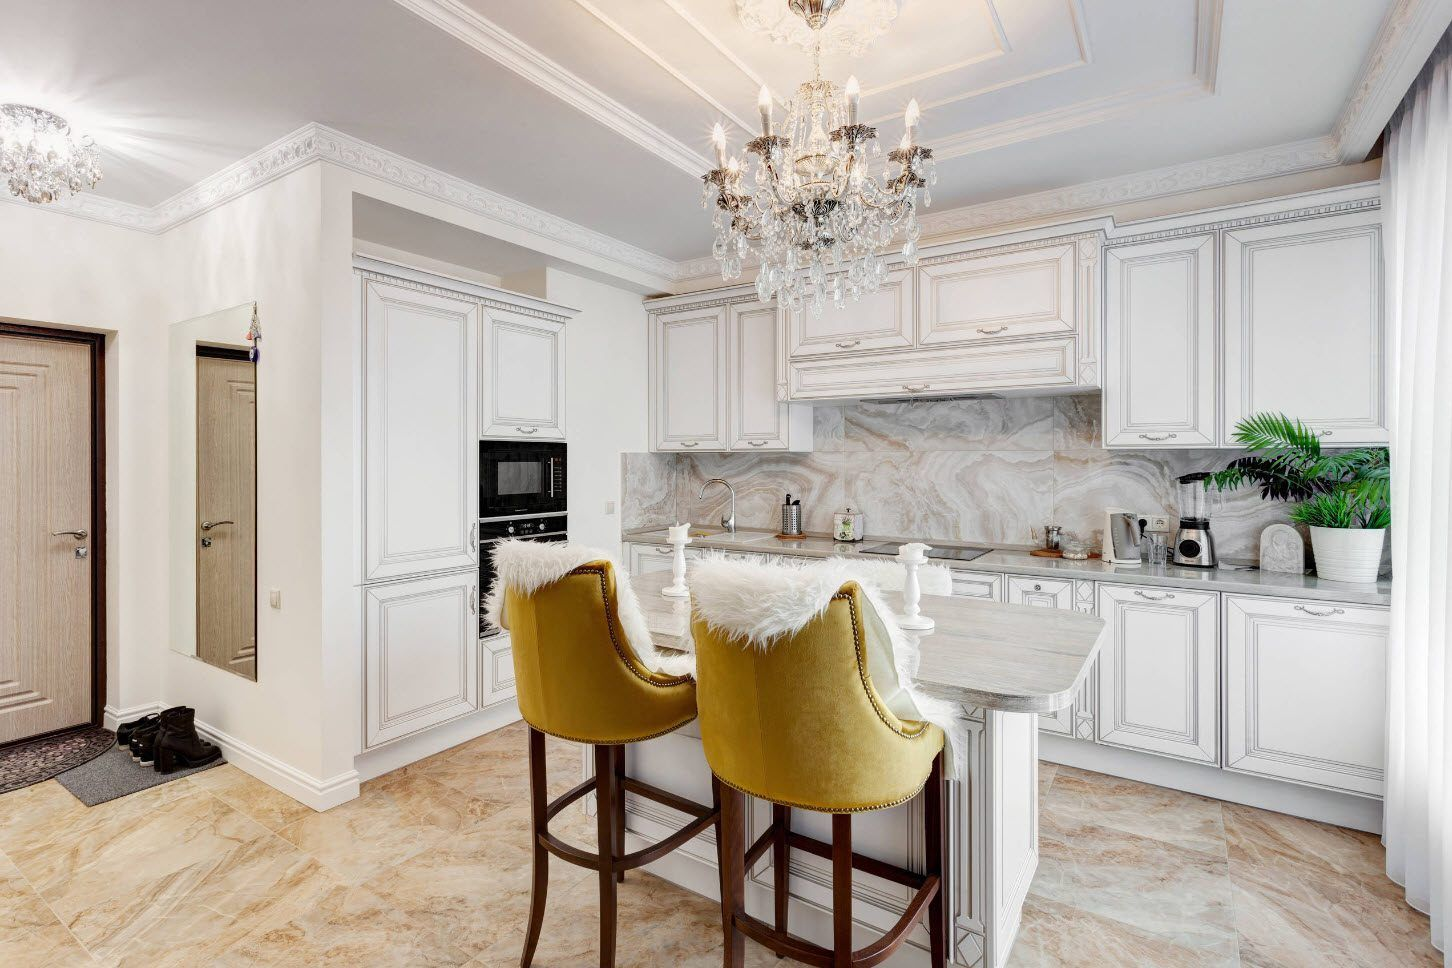 Classic kitchen interior with high-seat upholstered yellow chairs